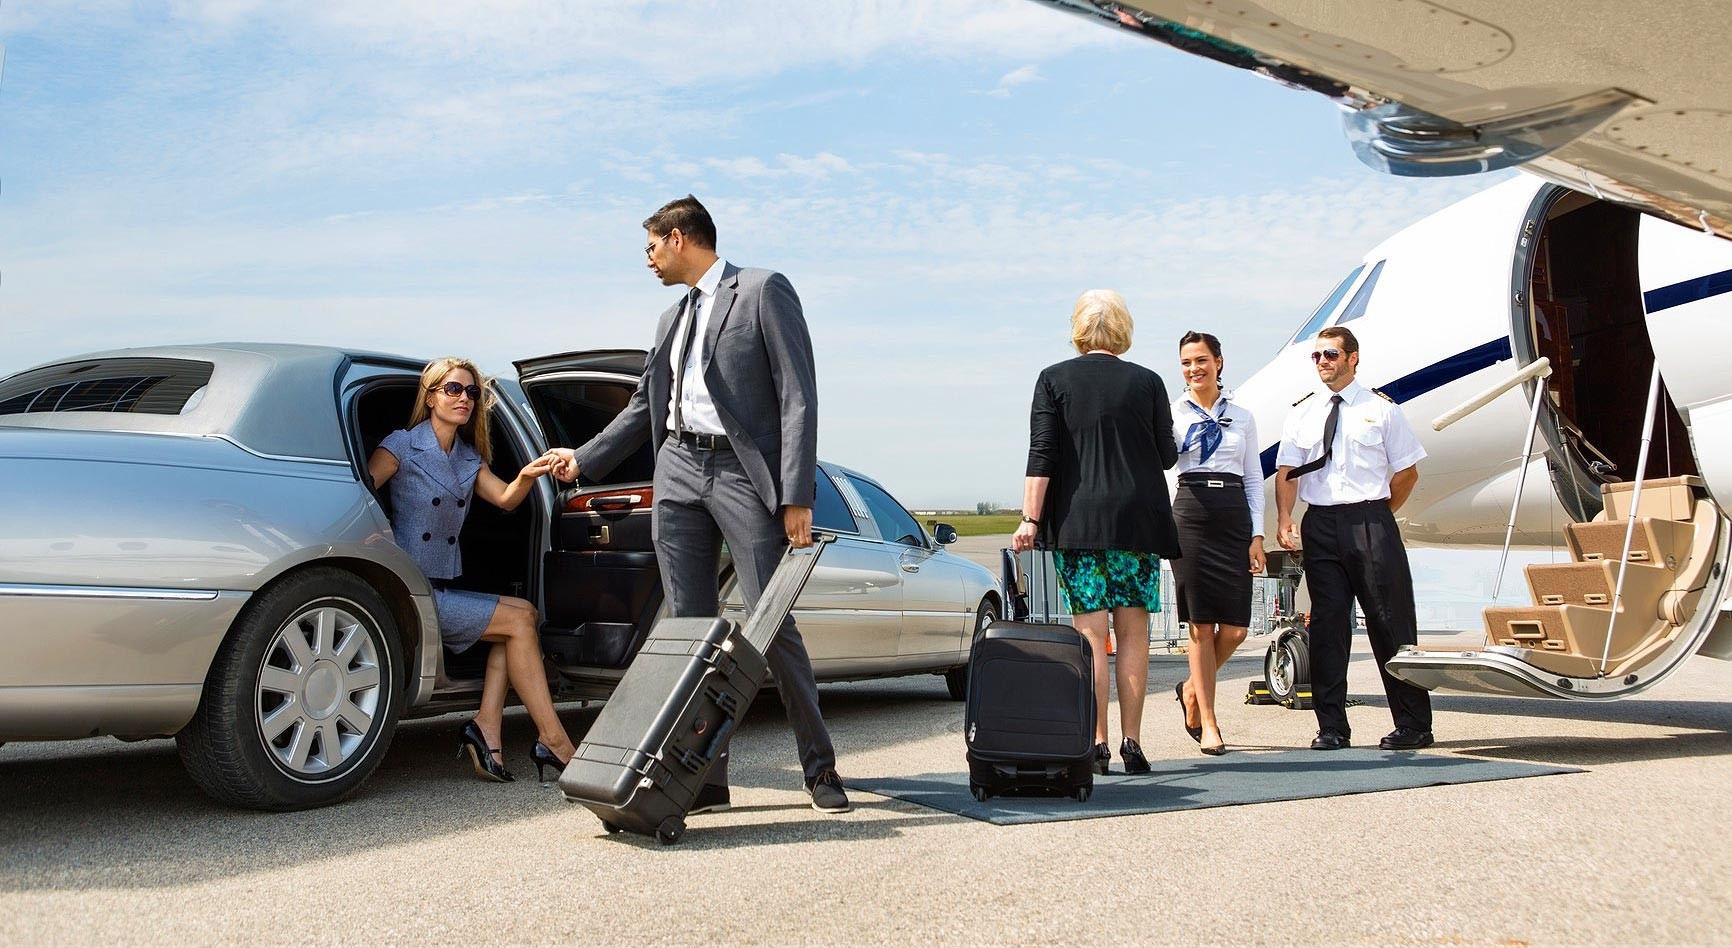 Chauffeur Service Singapore - Airport Transfer